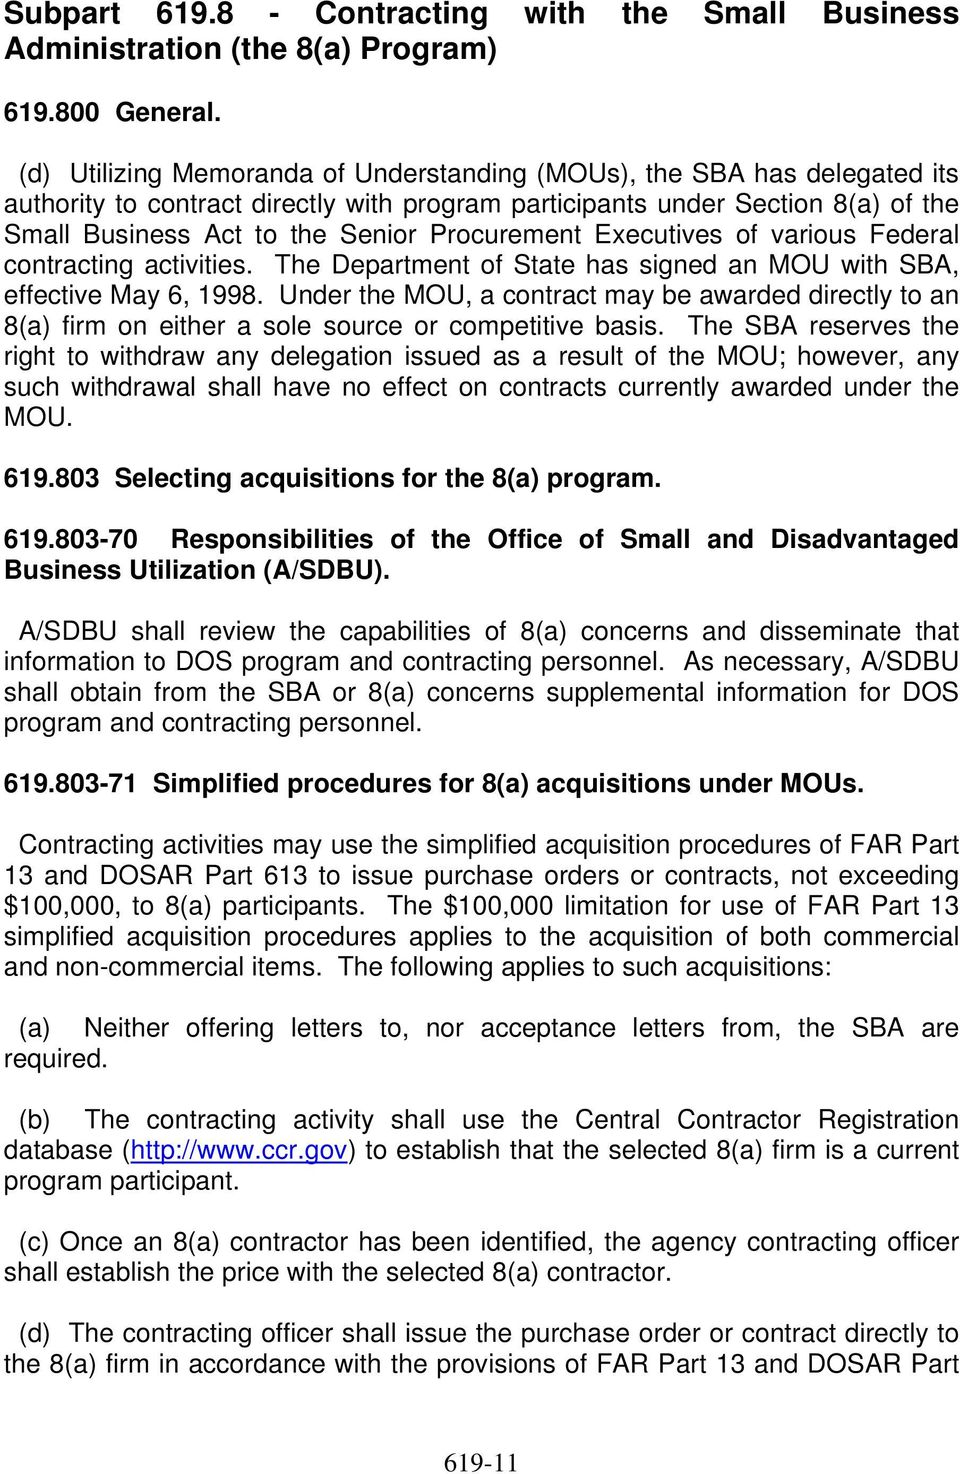 Procurement Executives of various Federal contracting activities. The Department of State has signed an MOU with SBA, effective May 6, 1998.